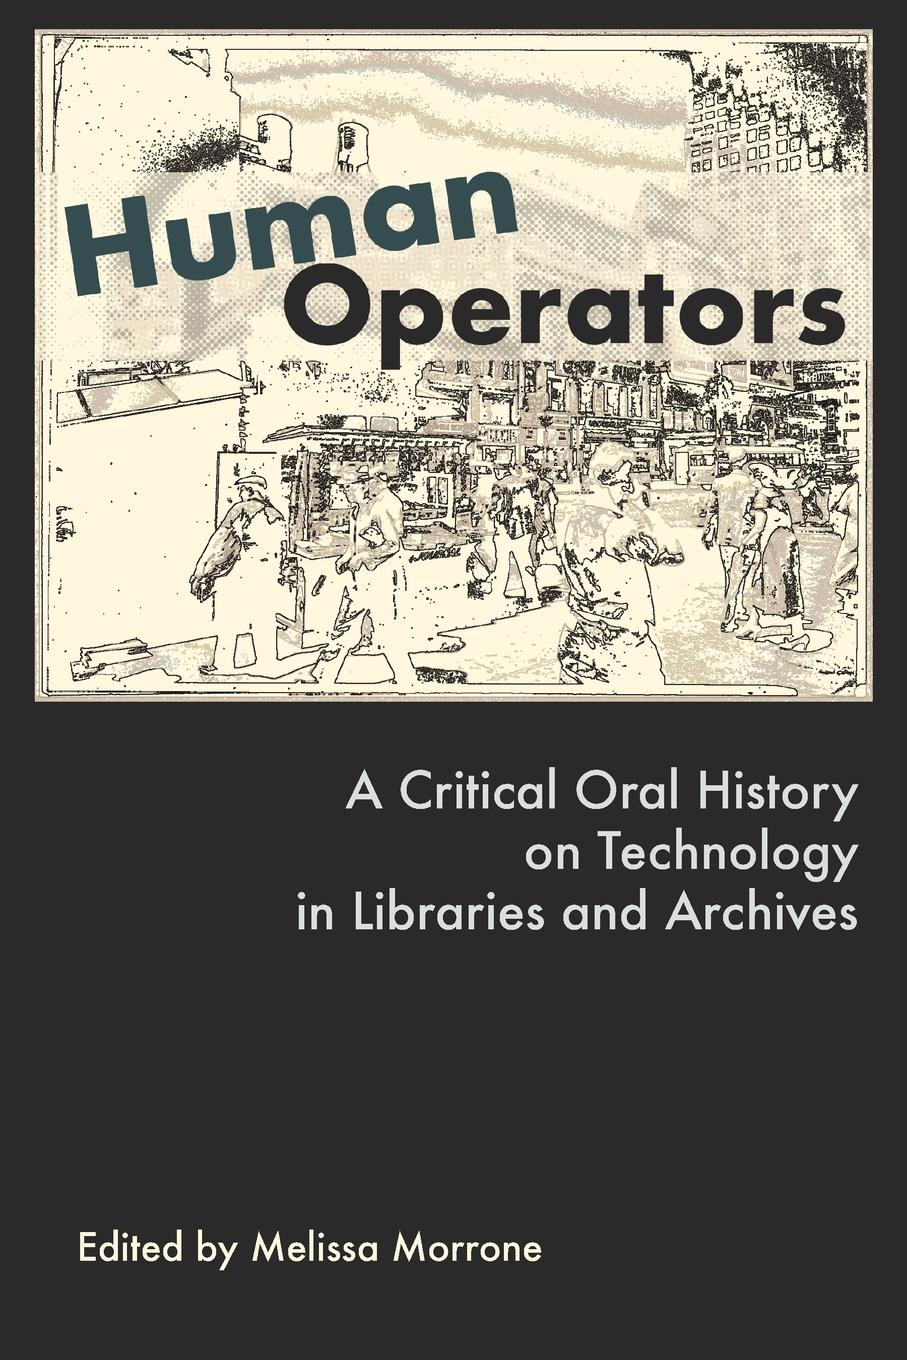 Human Operators. A Critical Oral History on Technology in Libraries and Archives